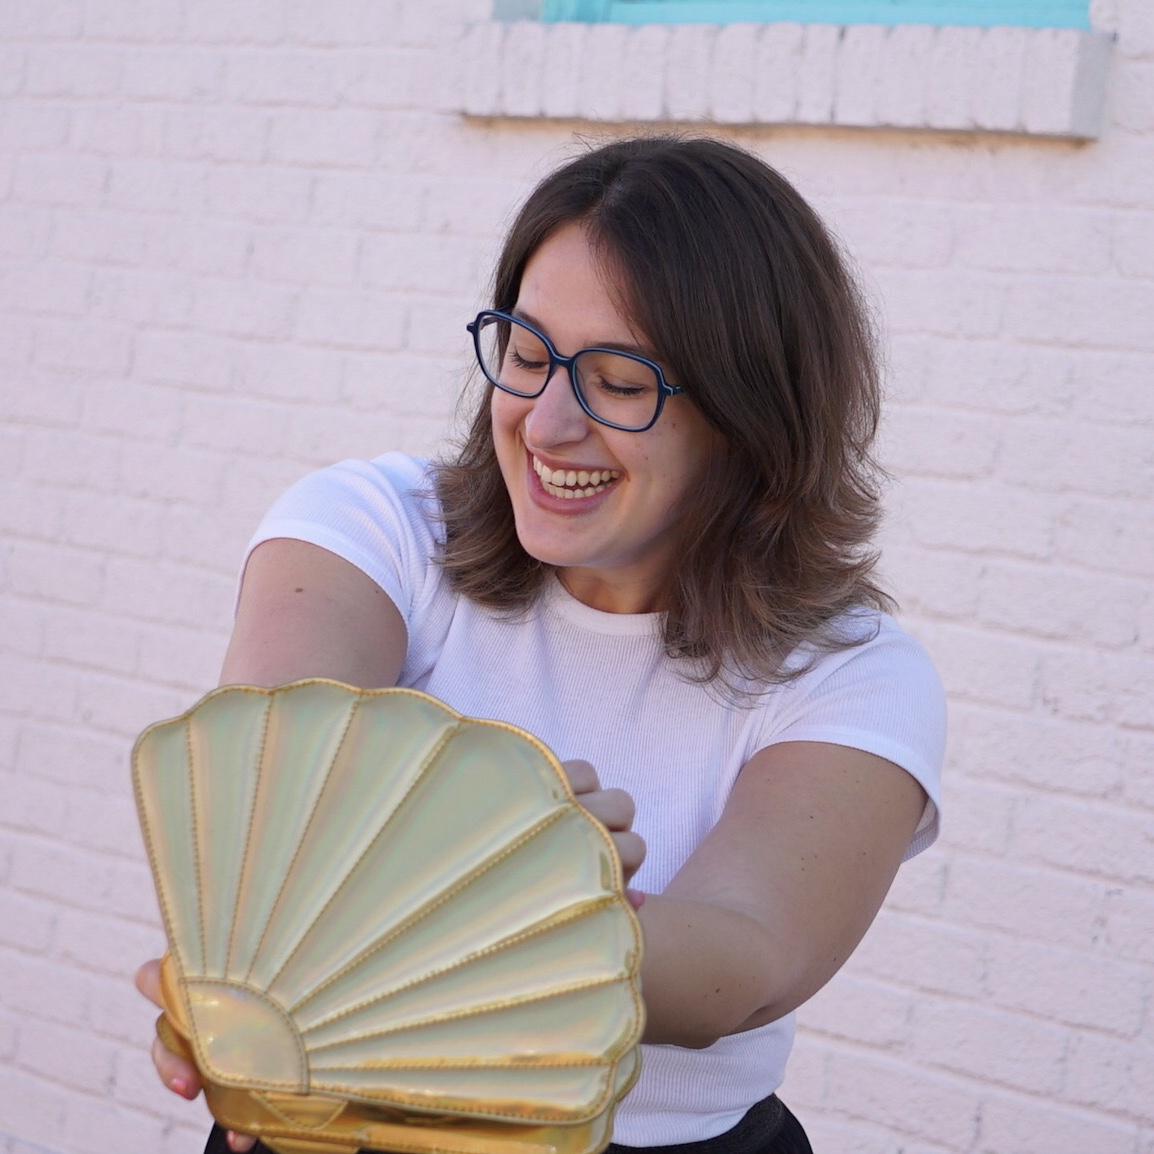 Rachel Waxman, aka PrincessRachL, is a brand manager / web designer / graphic designer living in Philadelphia. She is passionate about macaroni and cheese, time travel, sparkly black leggings, and  Buffy the Vampire    Slayer  . See more of what she's up to on  Instagram .